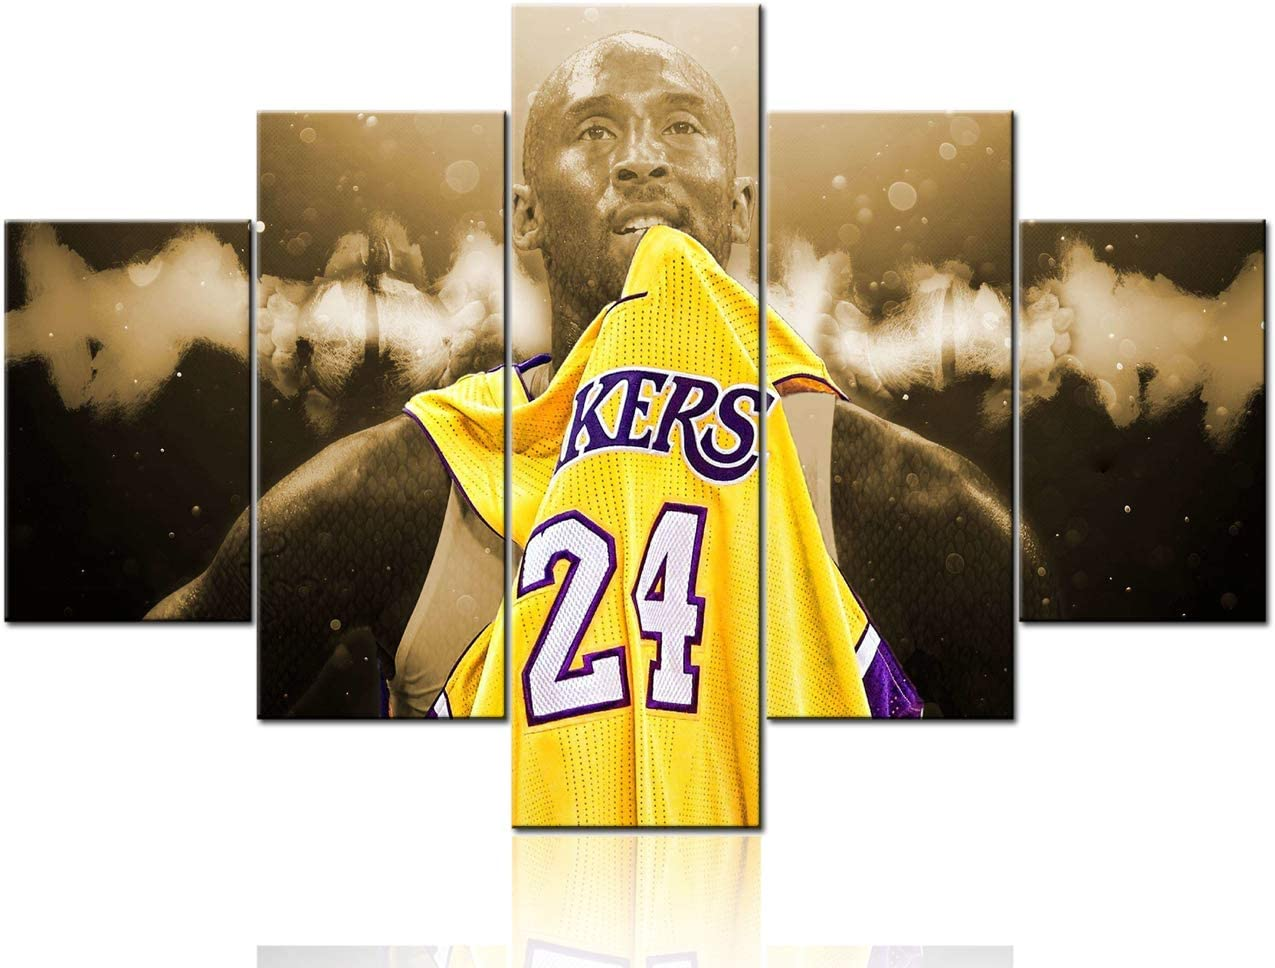 5 Piece Canvas Wall Art Sports Los Angeles Lakers Paintings Home Decor Basketball Prints on Canvas Kobe Bryant Modern Artwork Picture for Living Room Framed Stretched Ready to Hang - 60''Wx40''H